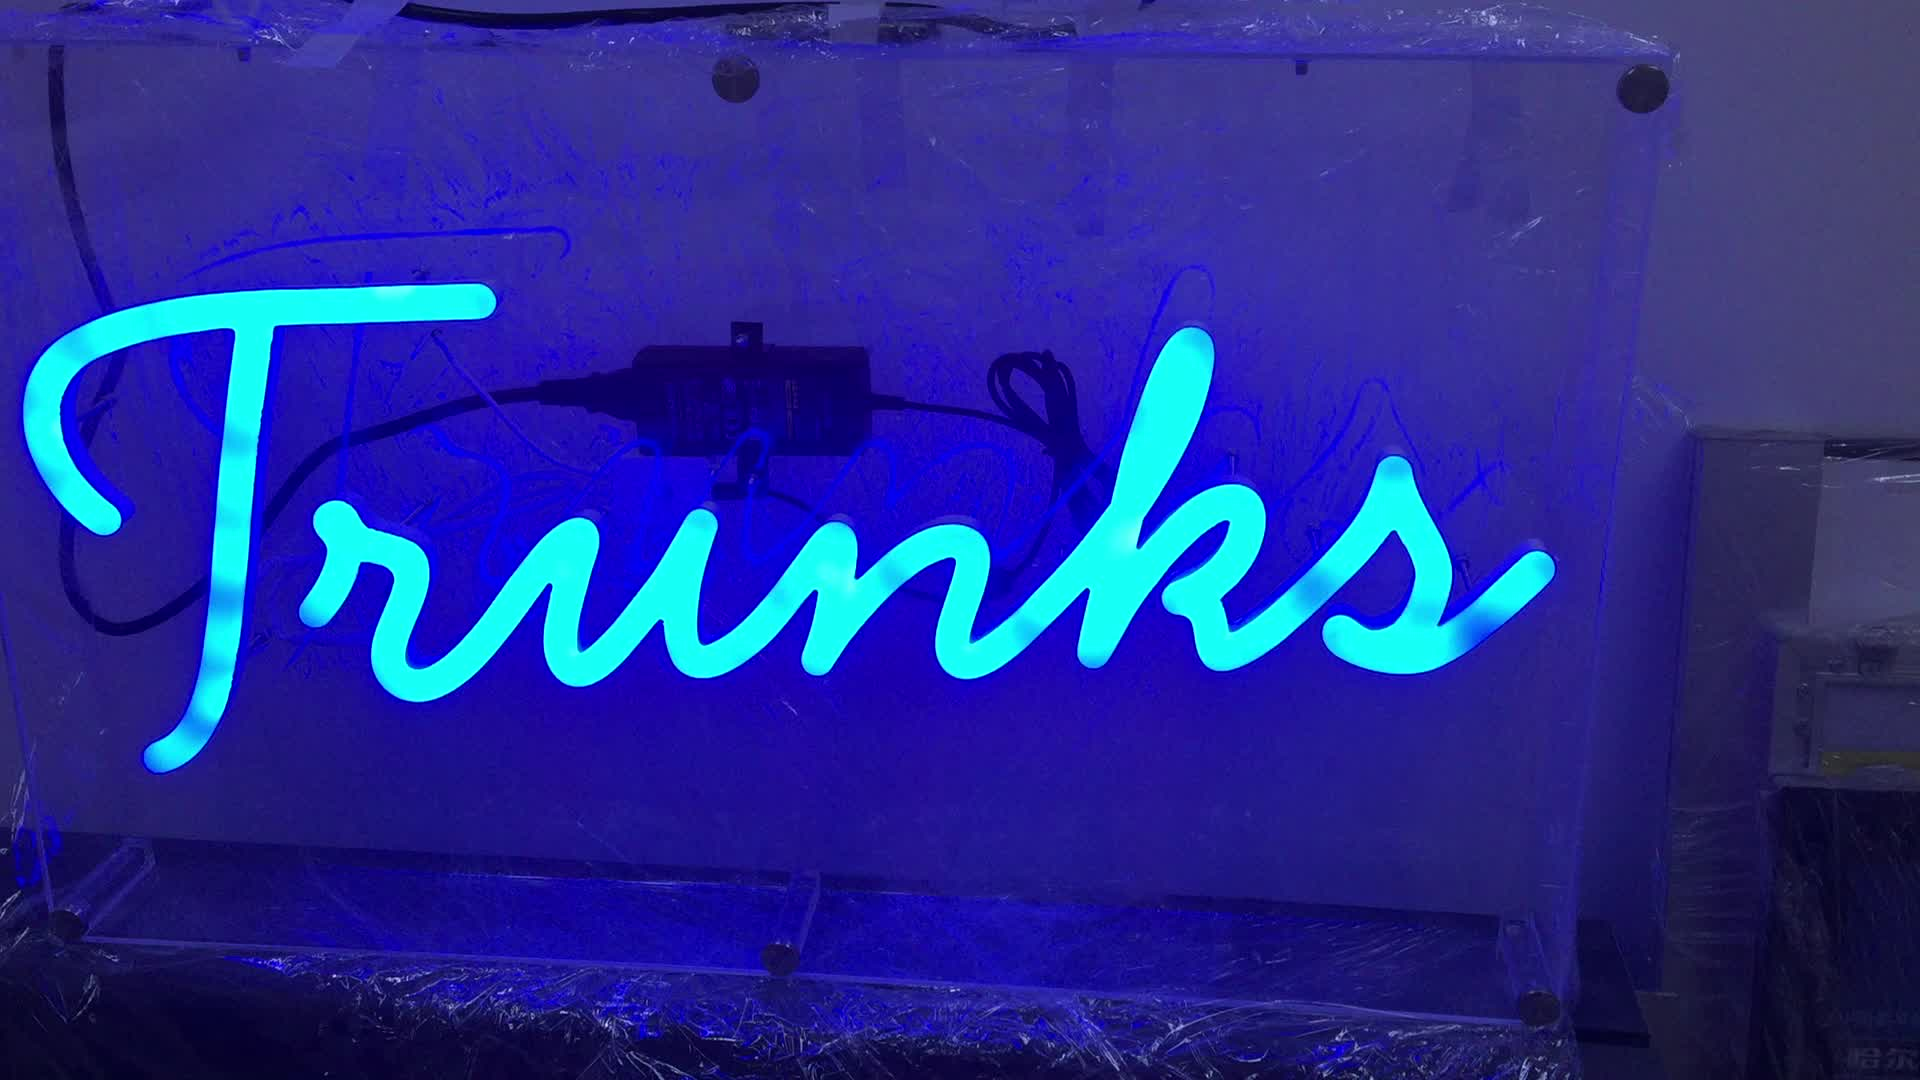 rgb color channel neon signage letters acrylic led letters decorative custom made flex glass neon led sign